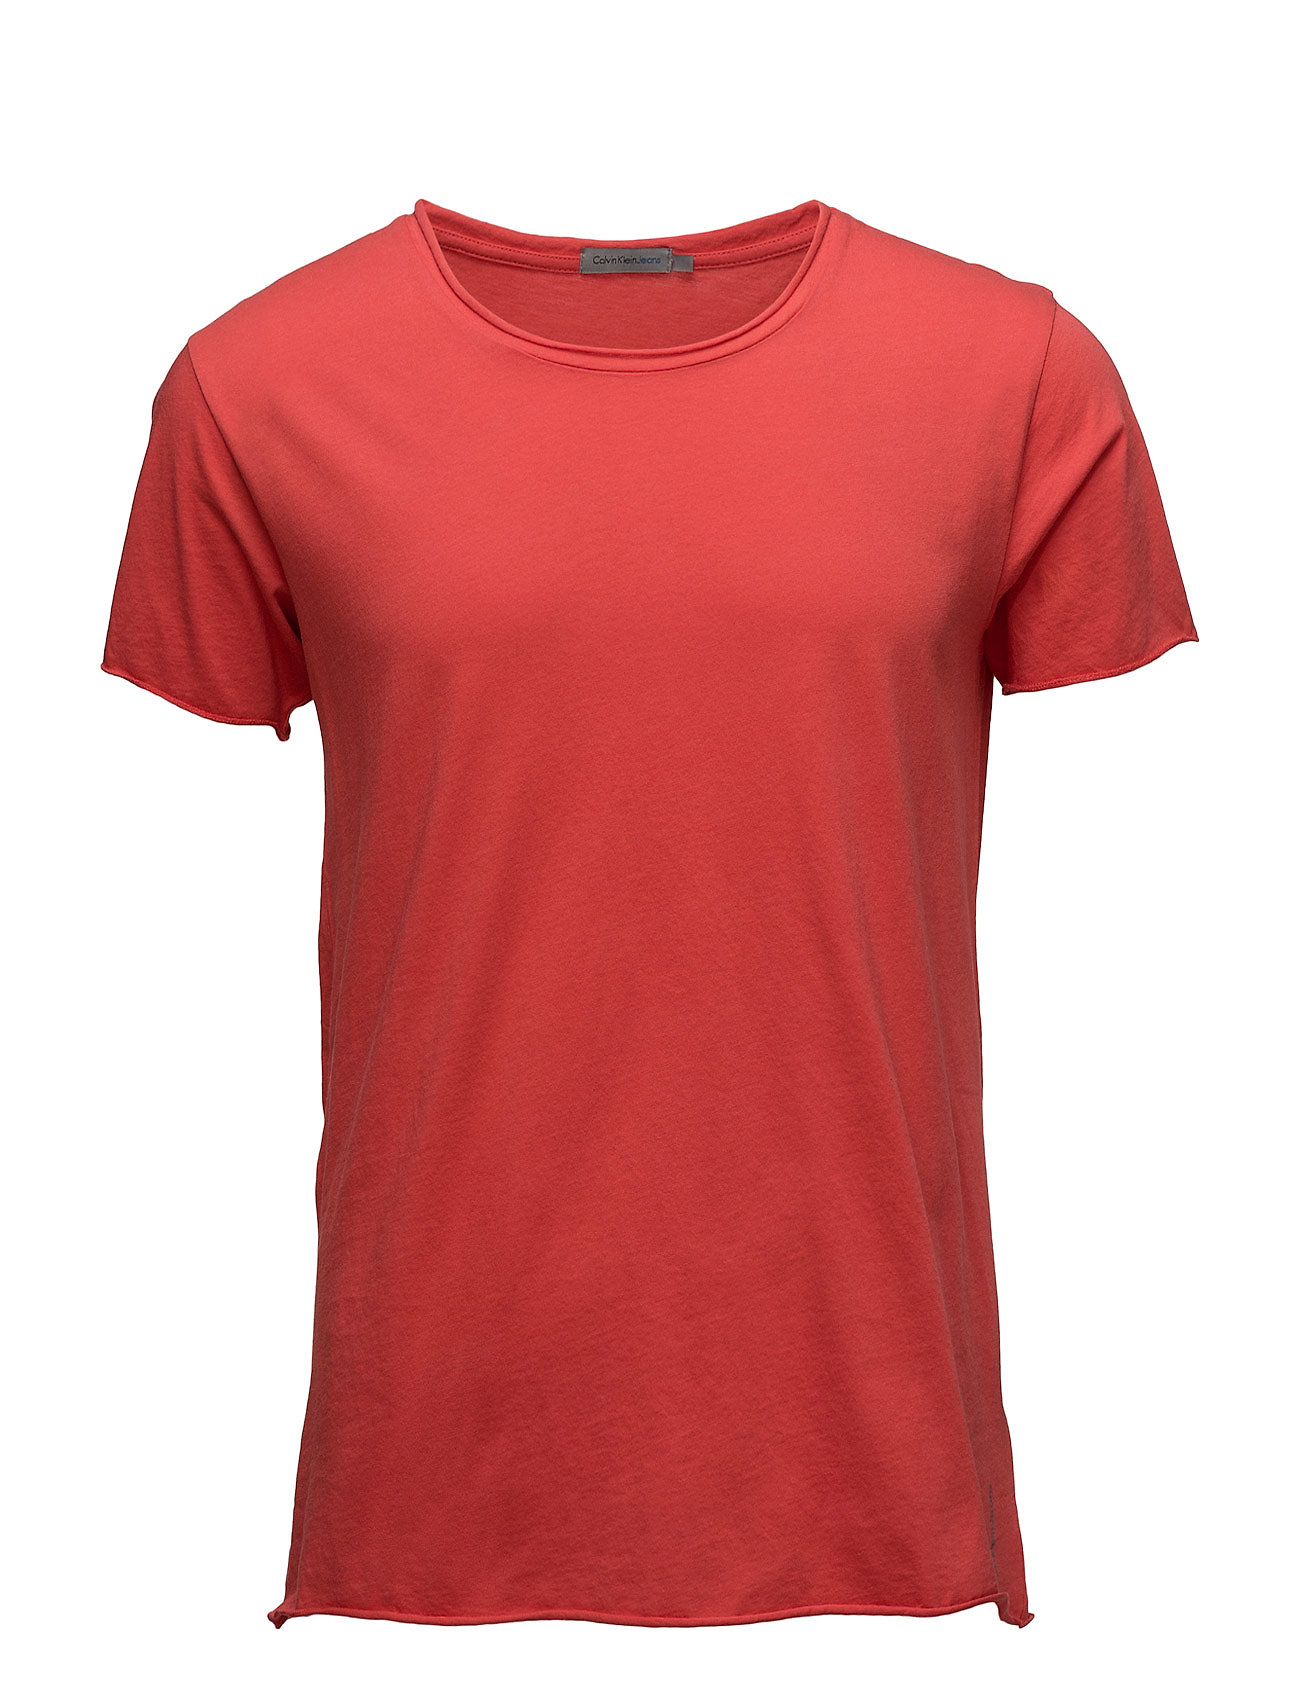 Tex 2 Cn Tee S/S, 11 Calvin Klein Jeans T-shirts til Mænd i Fiery Red